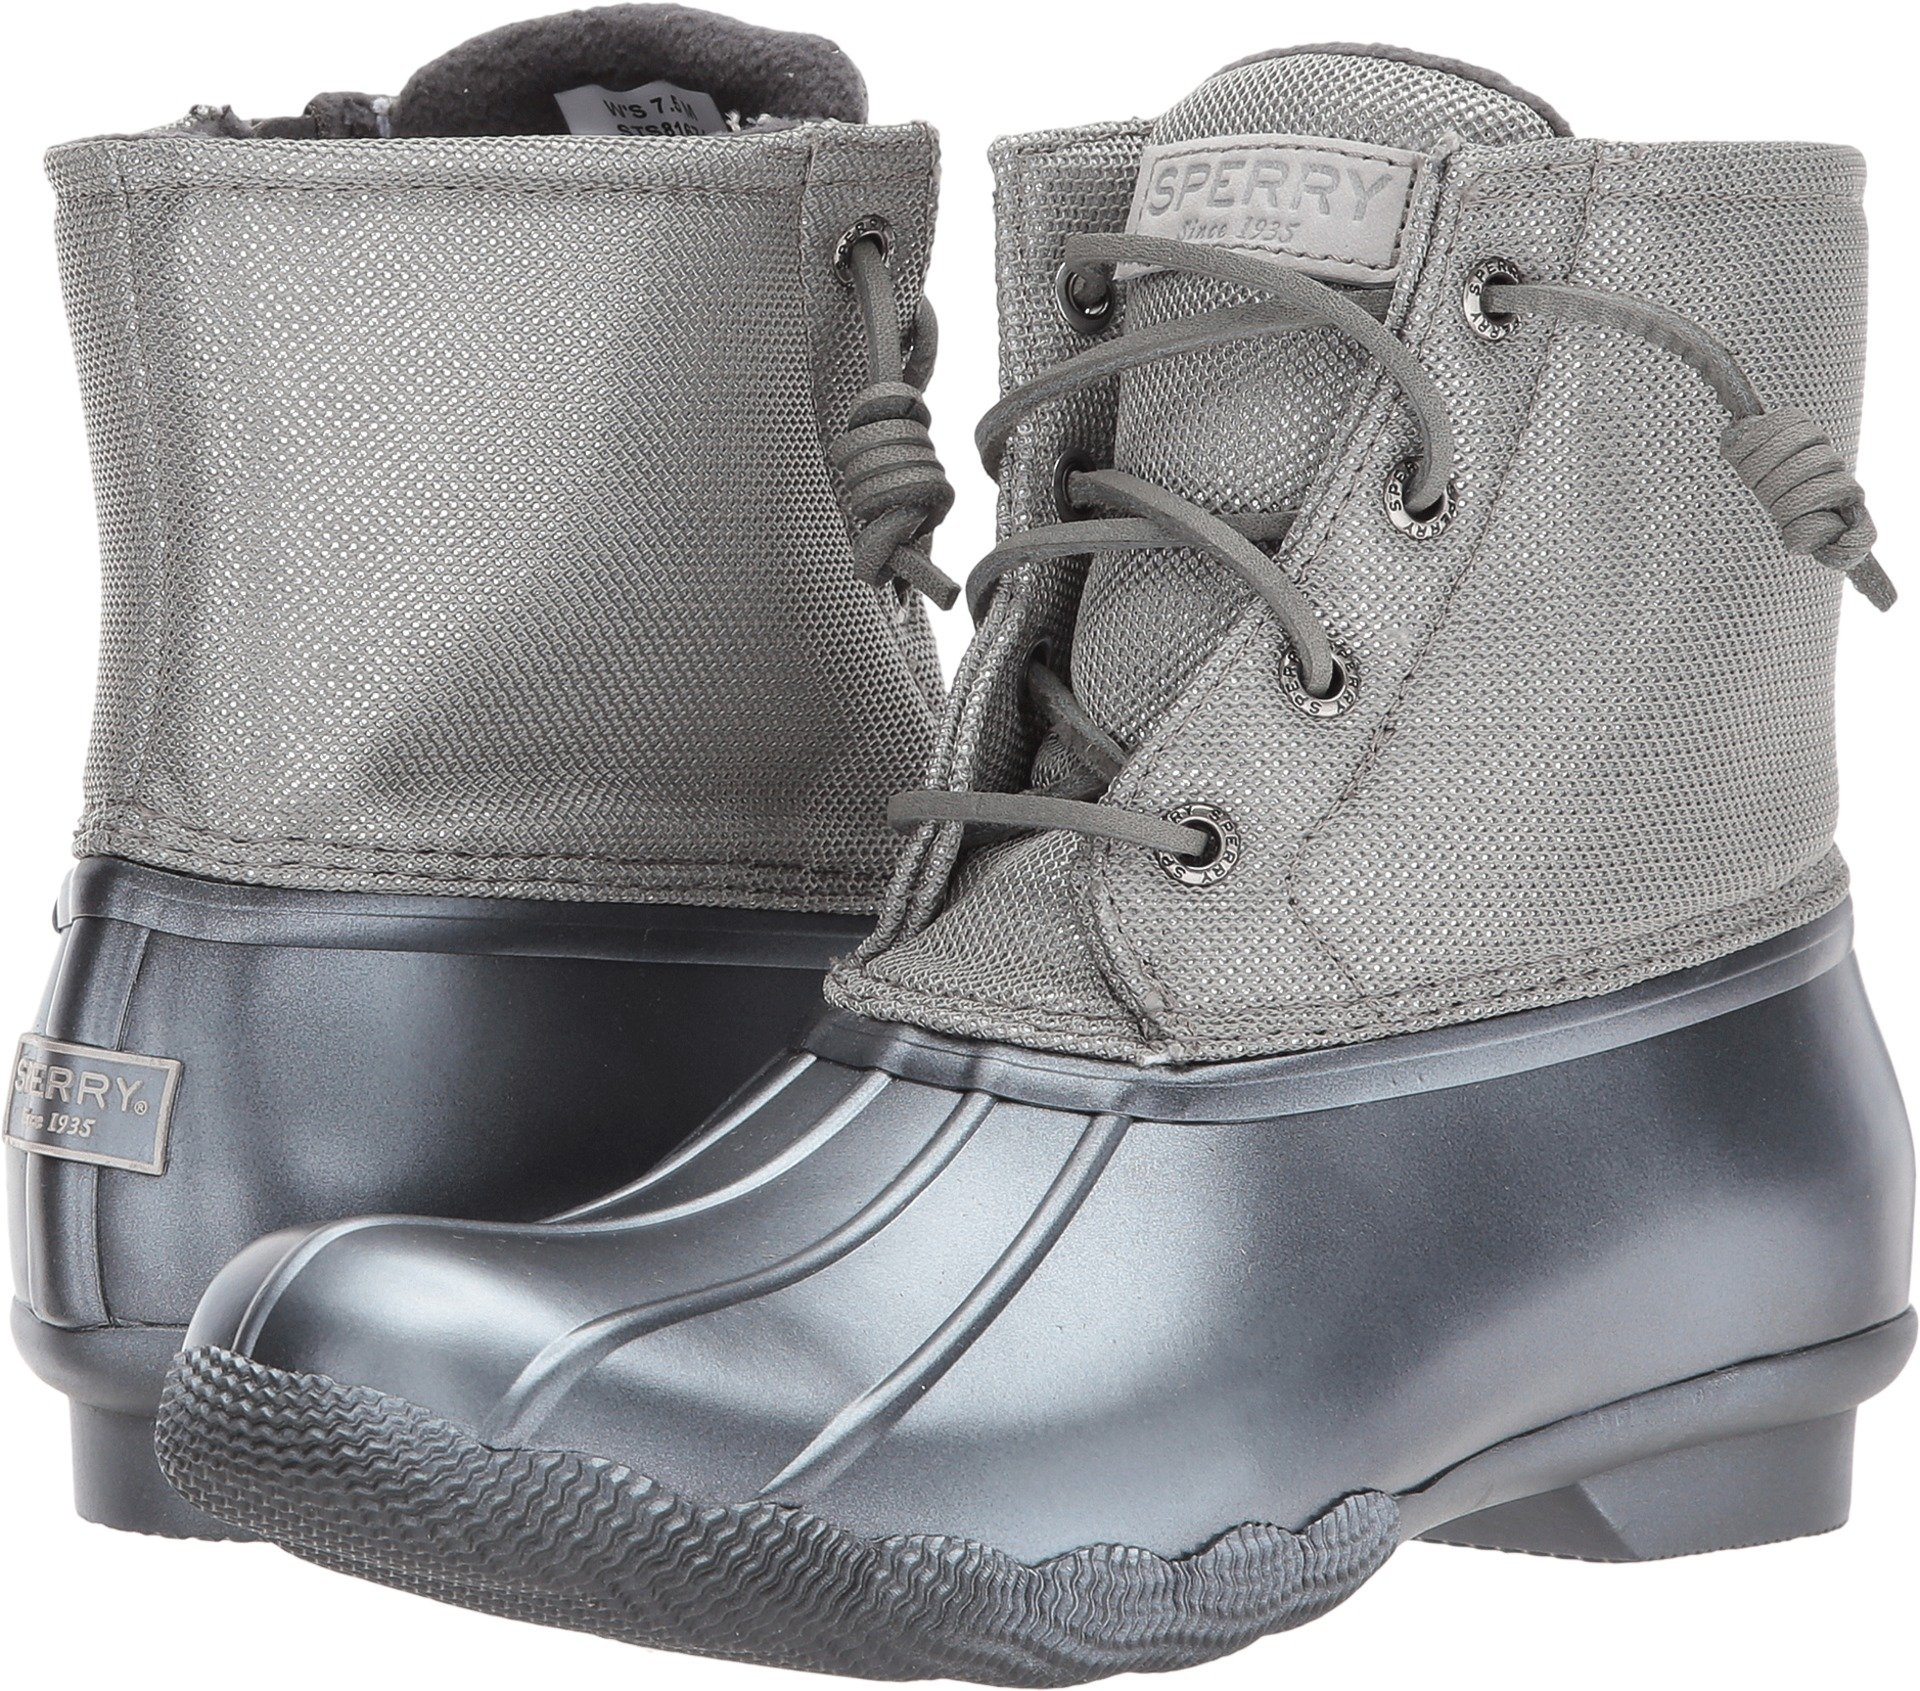 Sperry Top-Sider Women's Saltwater Pearlized Rain Boot, Gunmetal, 9.5 Medium US by Sperry Top-Sider (Image #1)